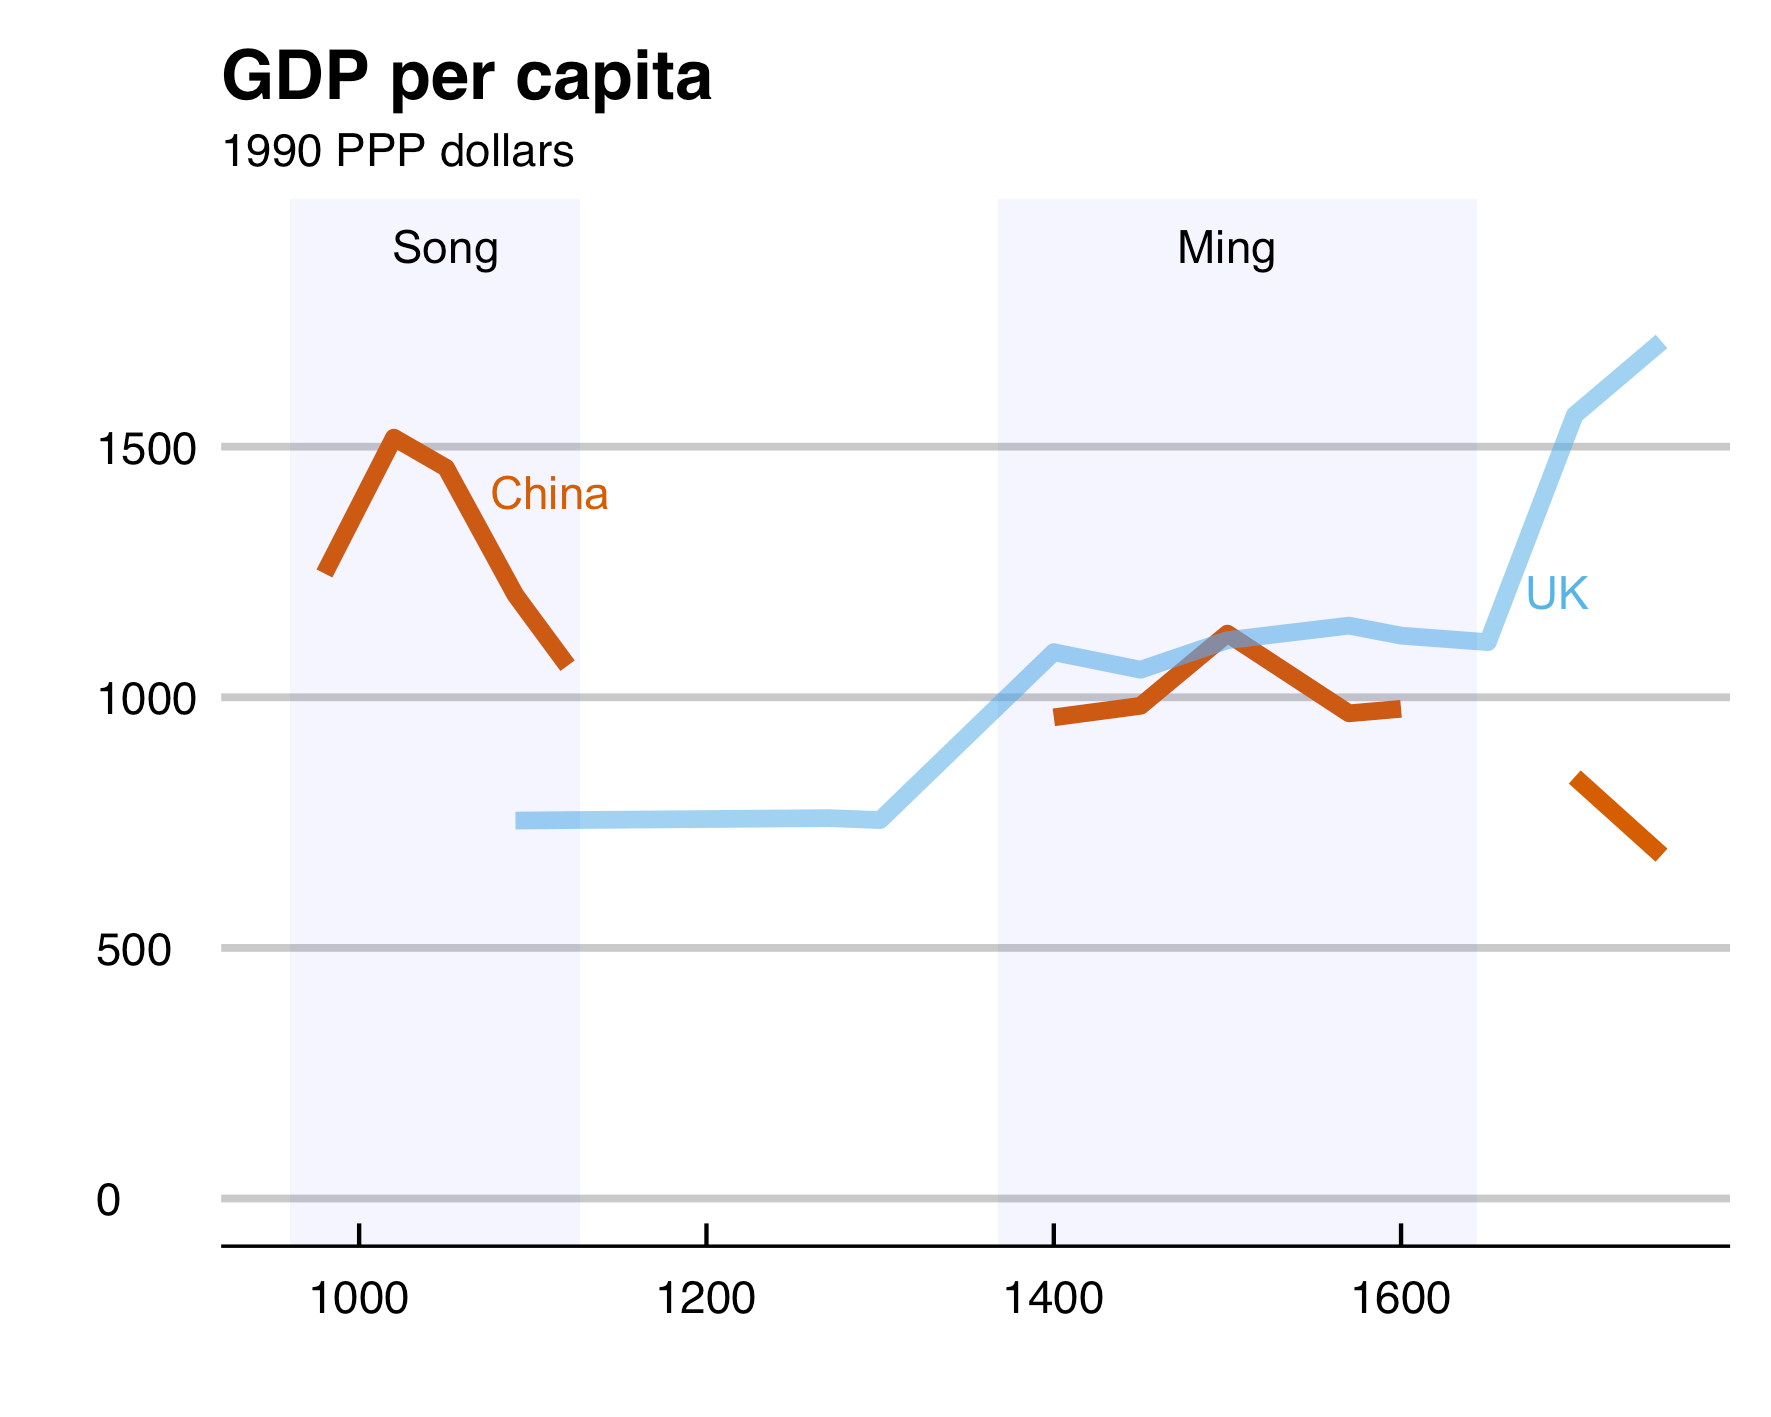 A graph of China and the UK's GDP per capita